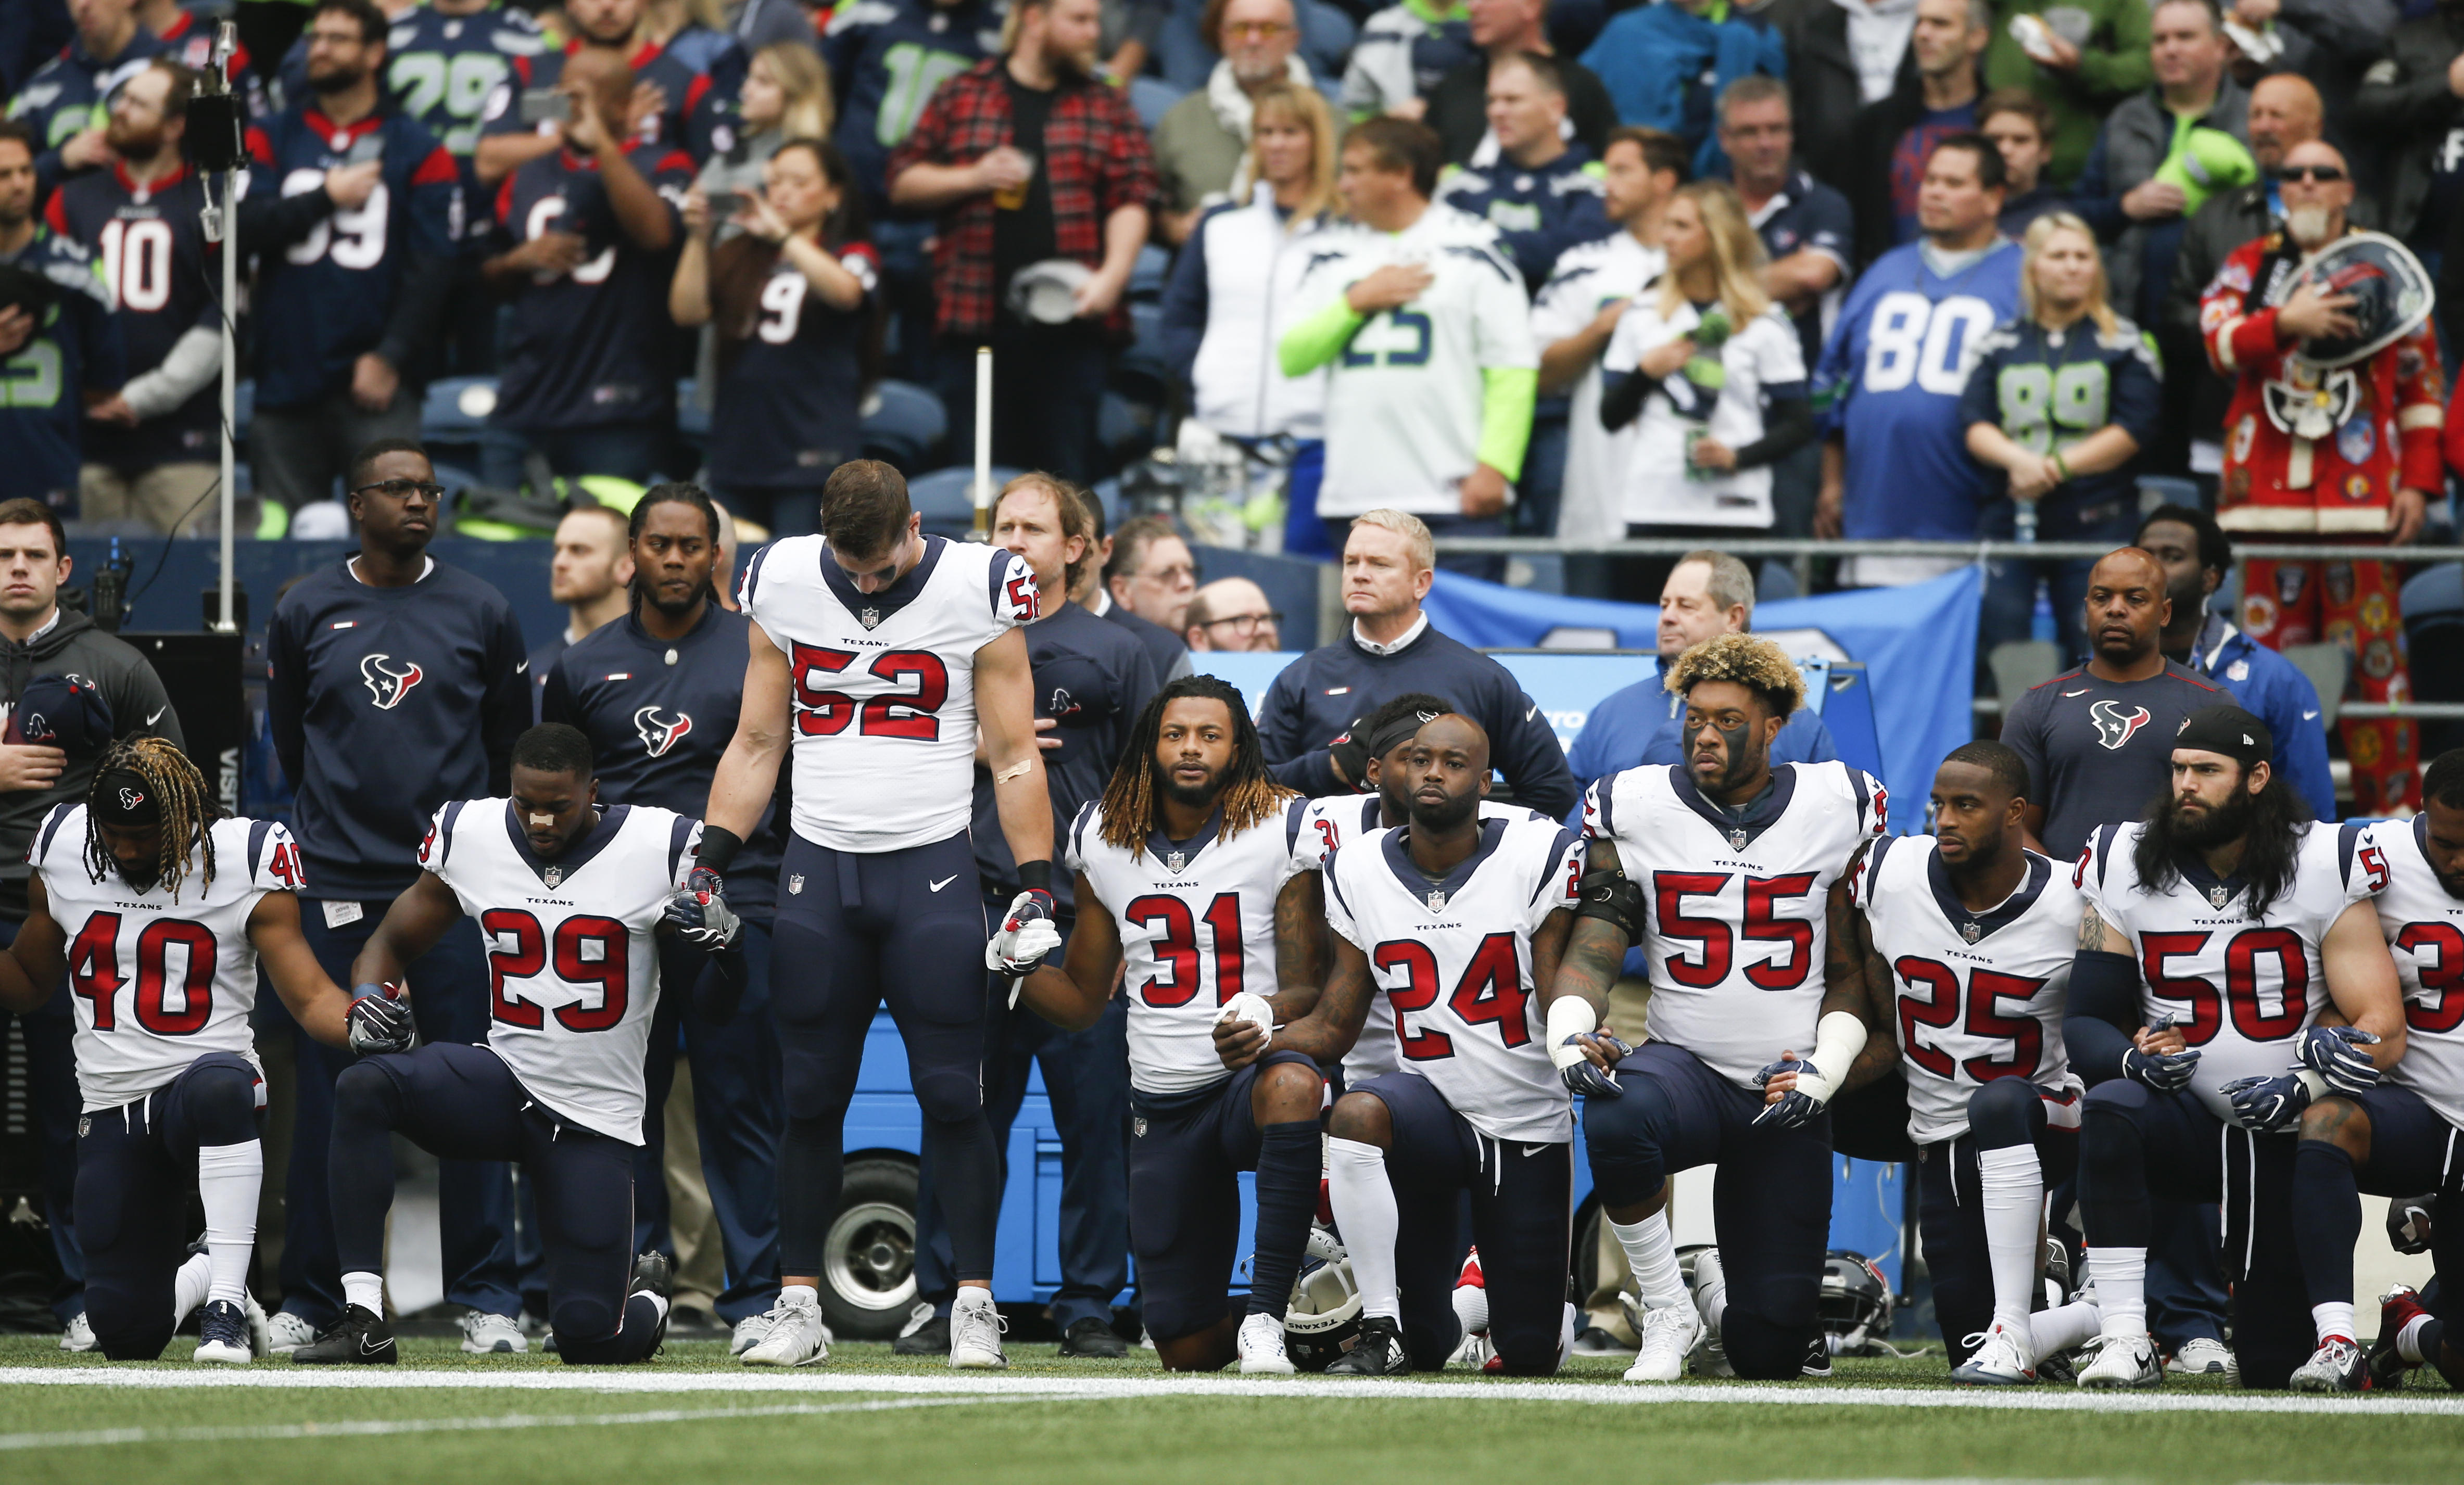 Nearly Entire Texans Team Kneels During National Anthem